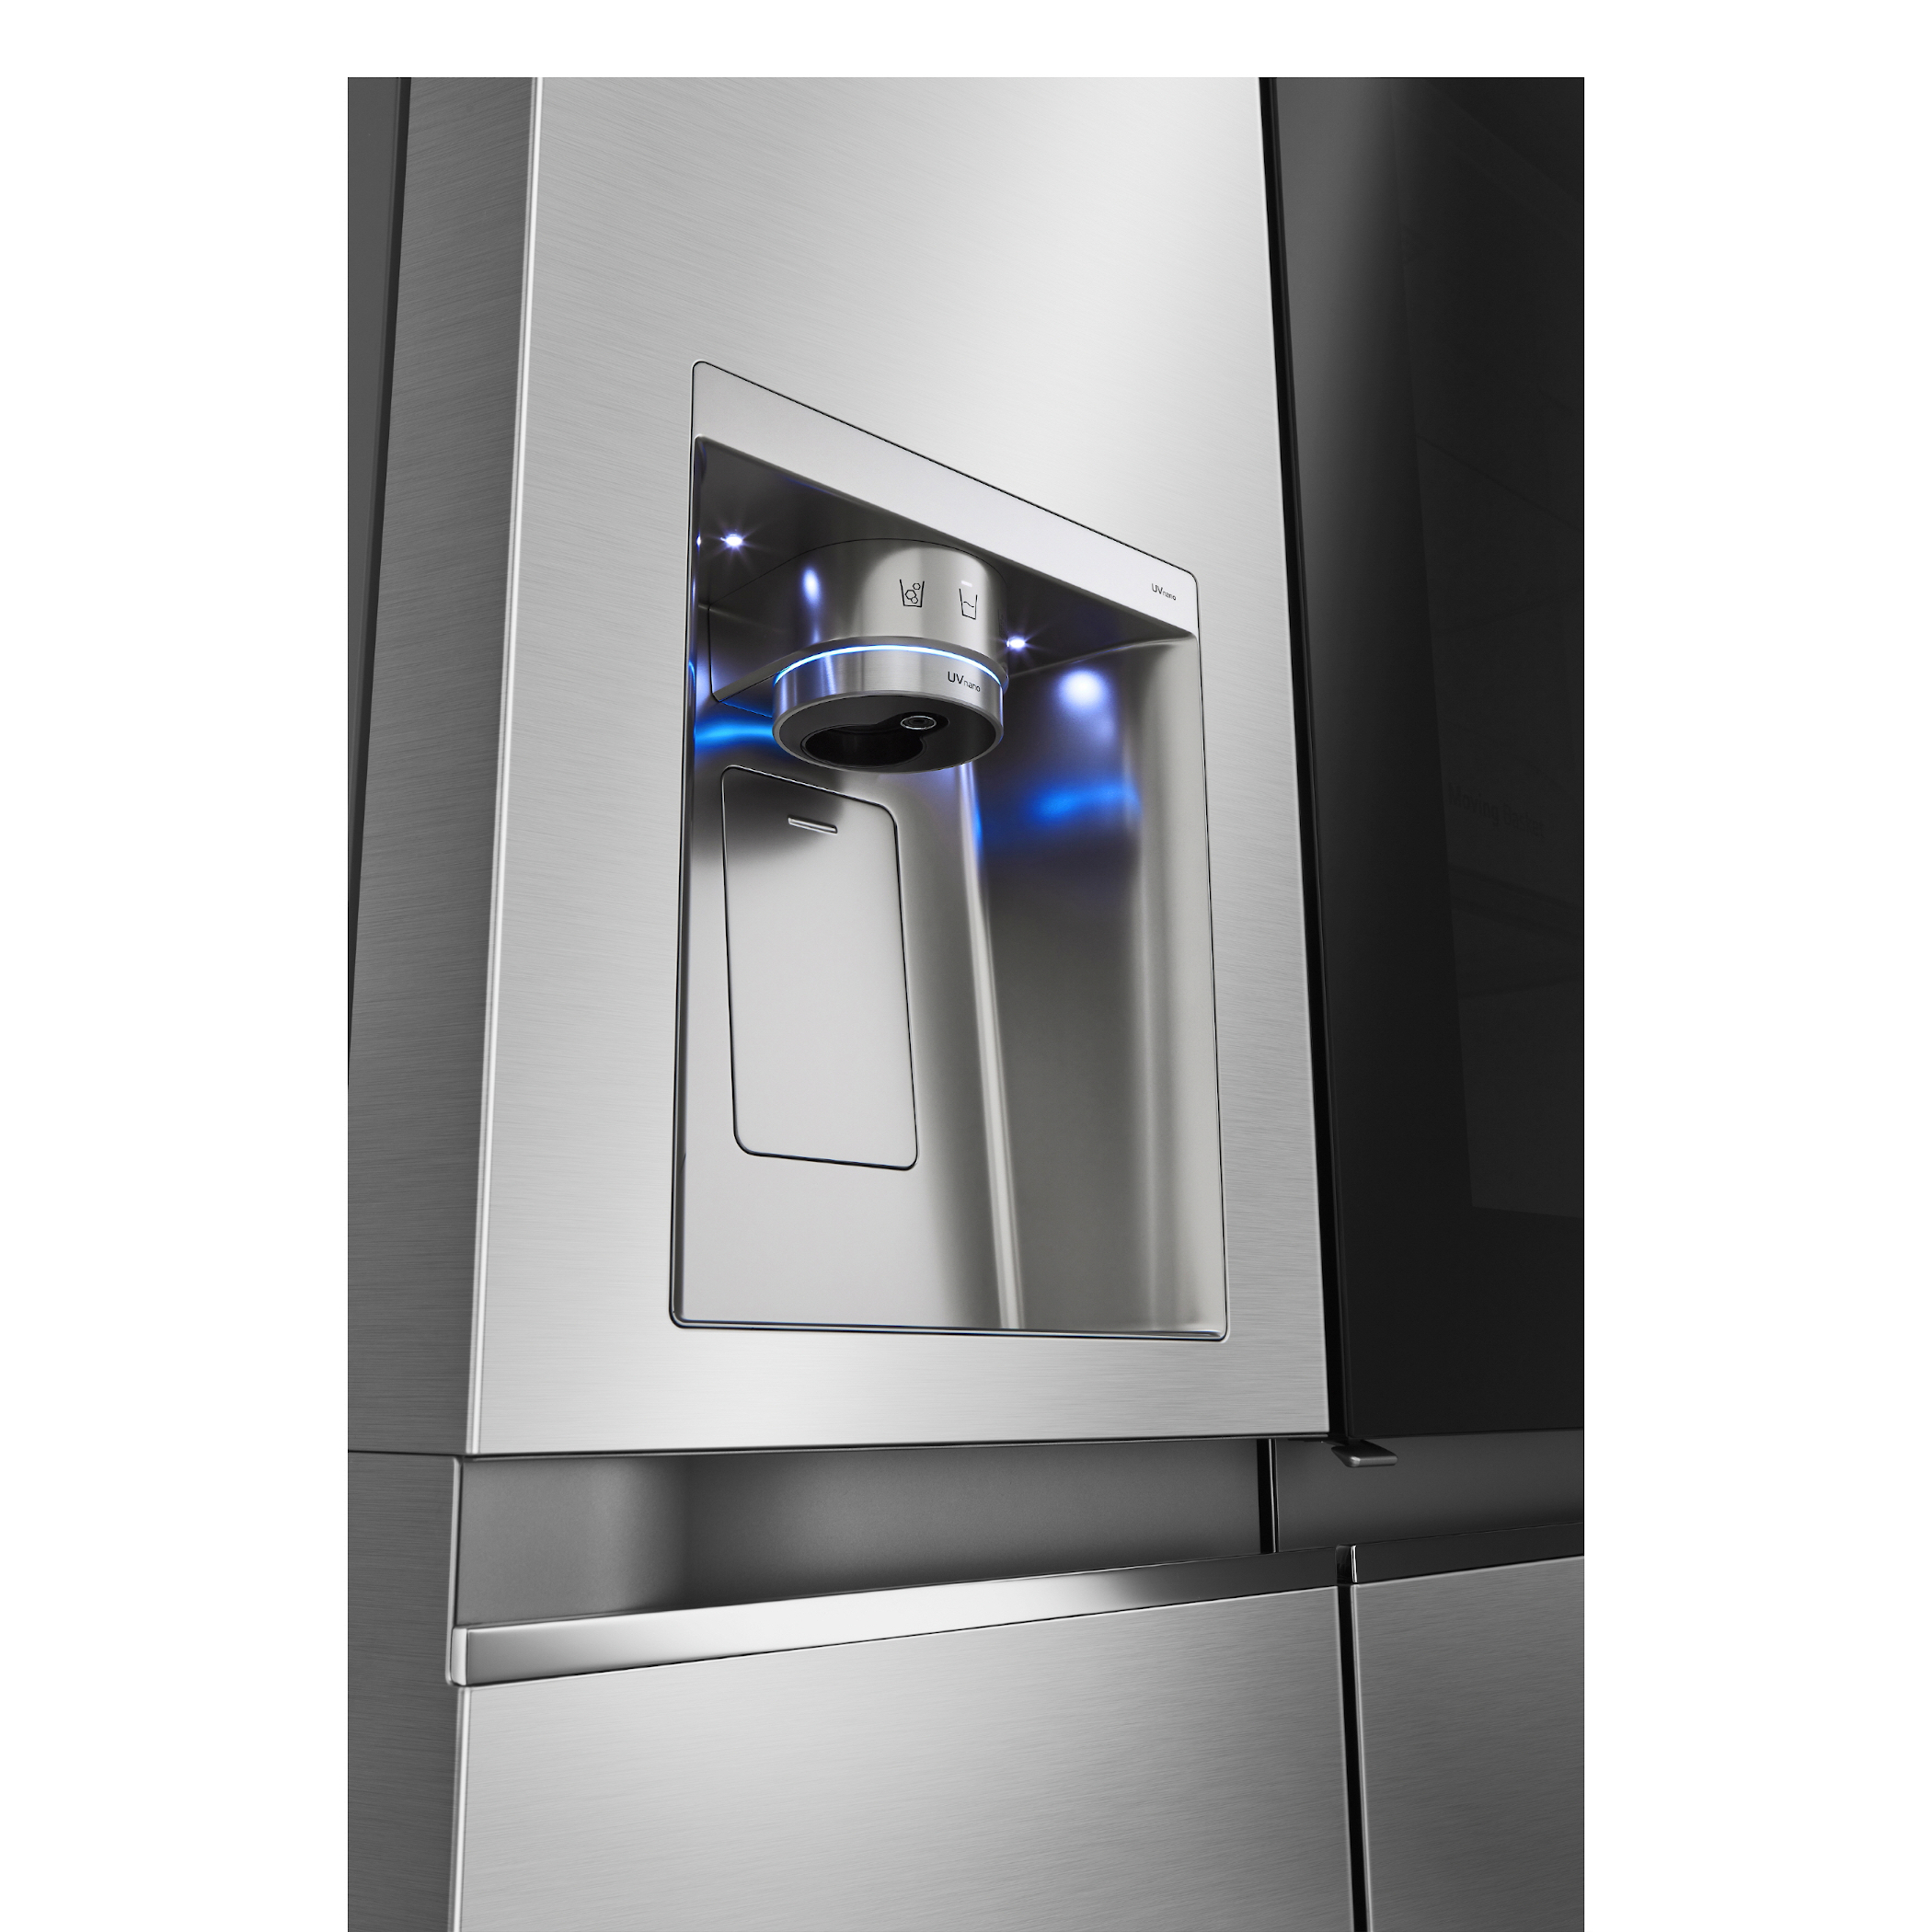 Rear view of water and ice dispenser with UVnano™ technology